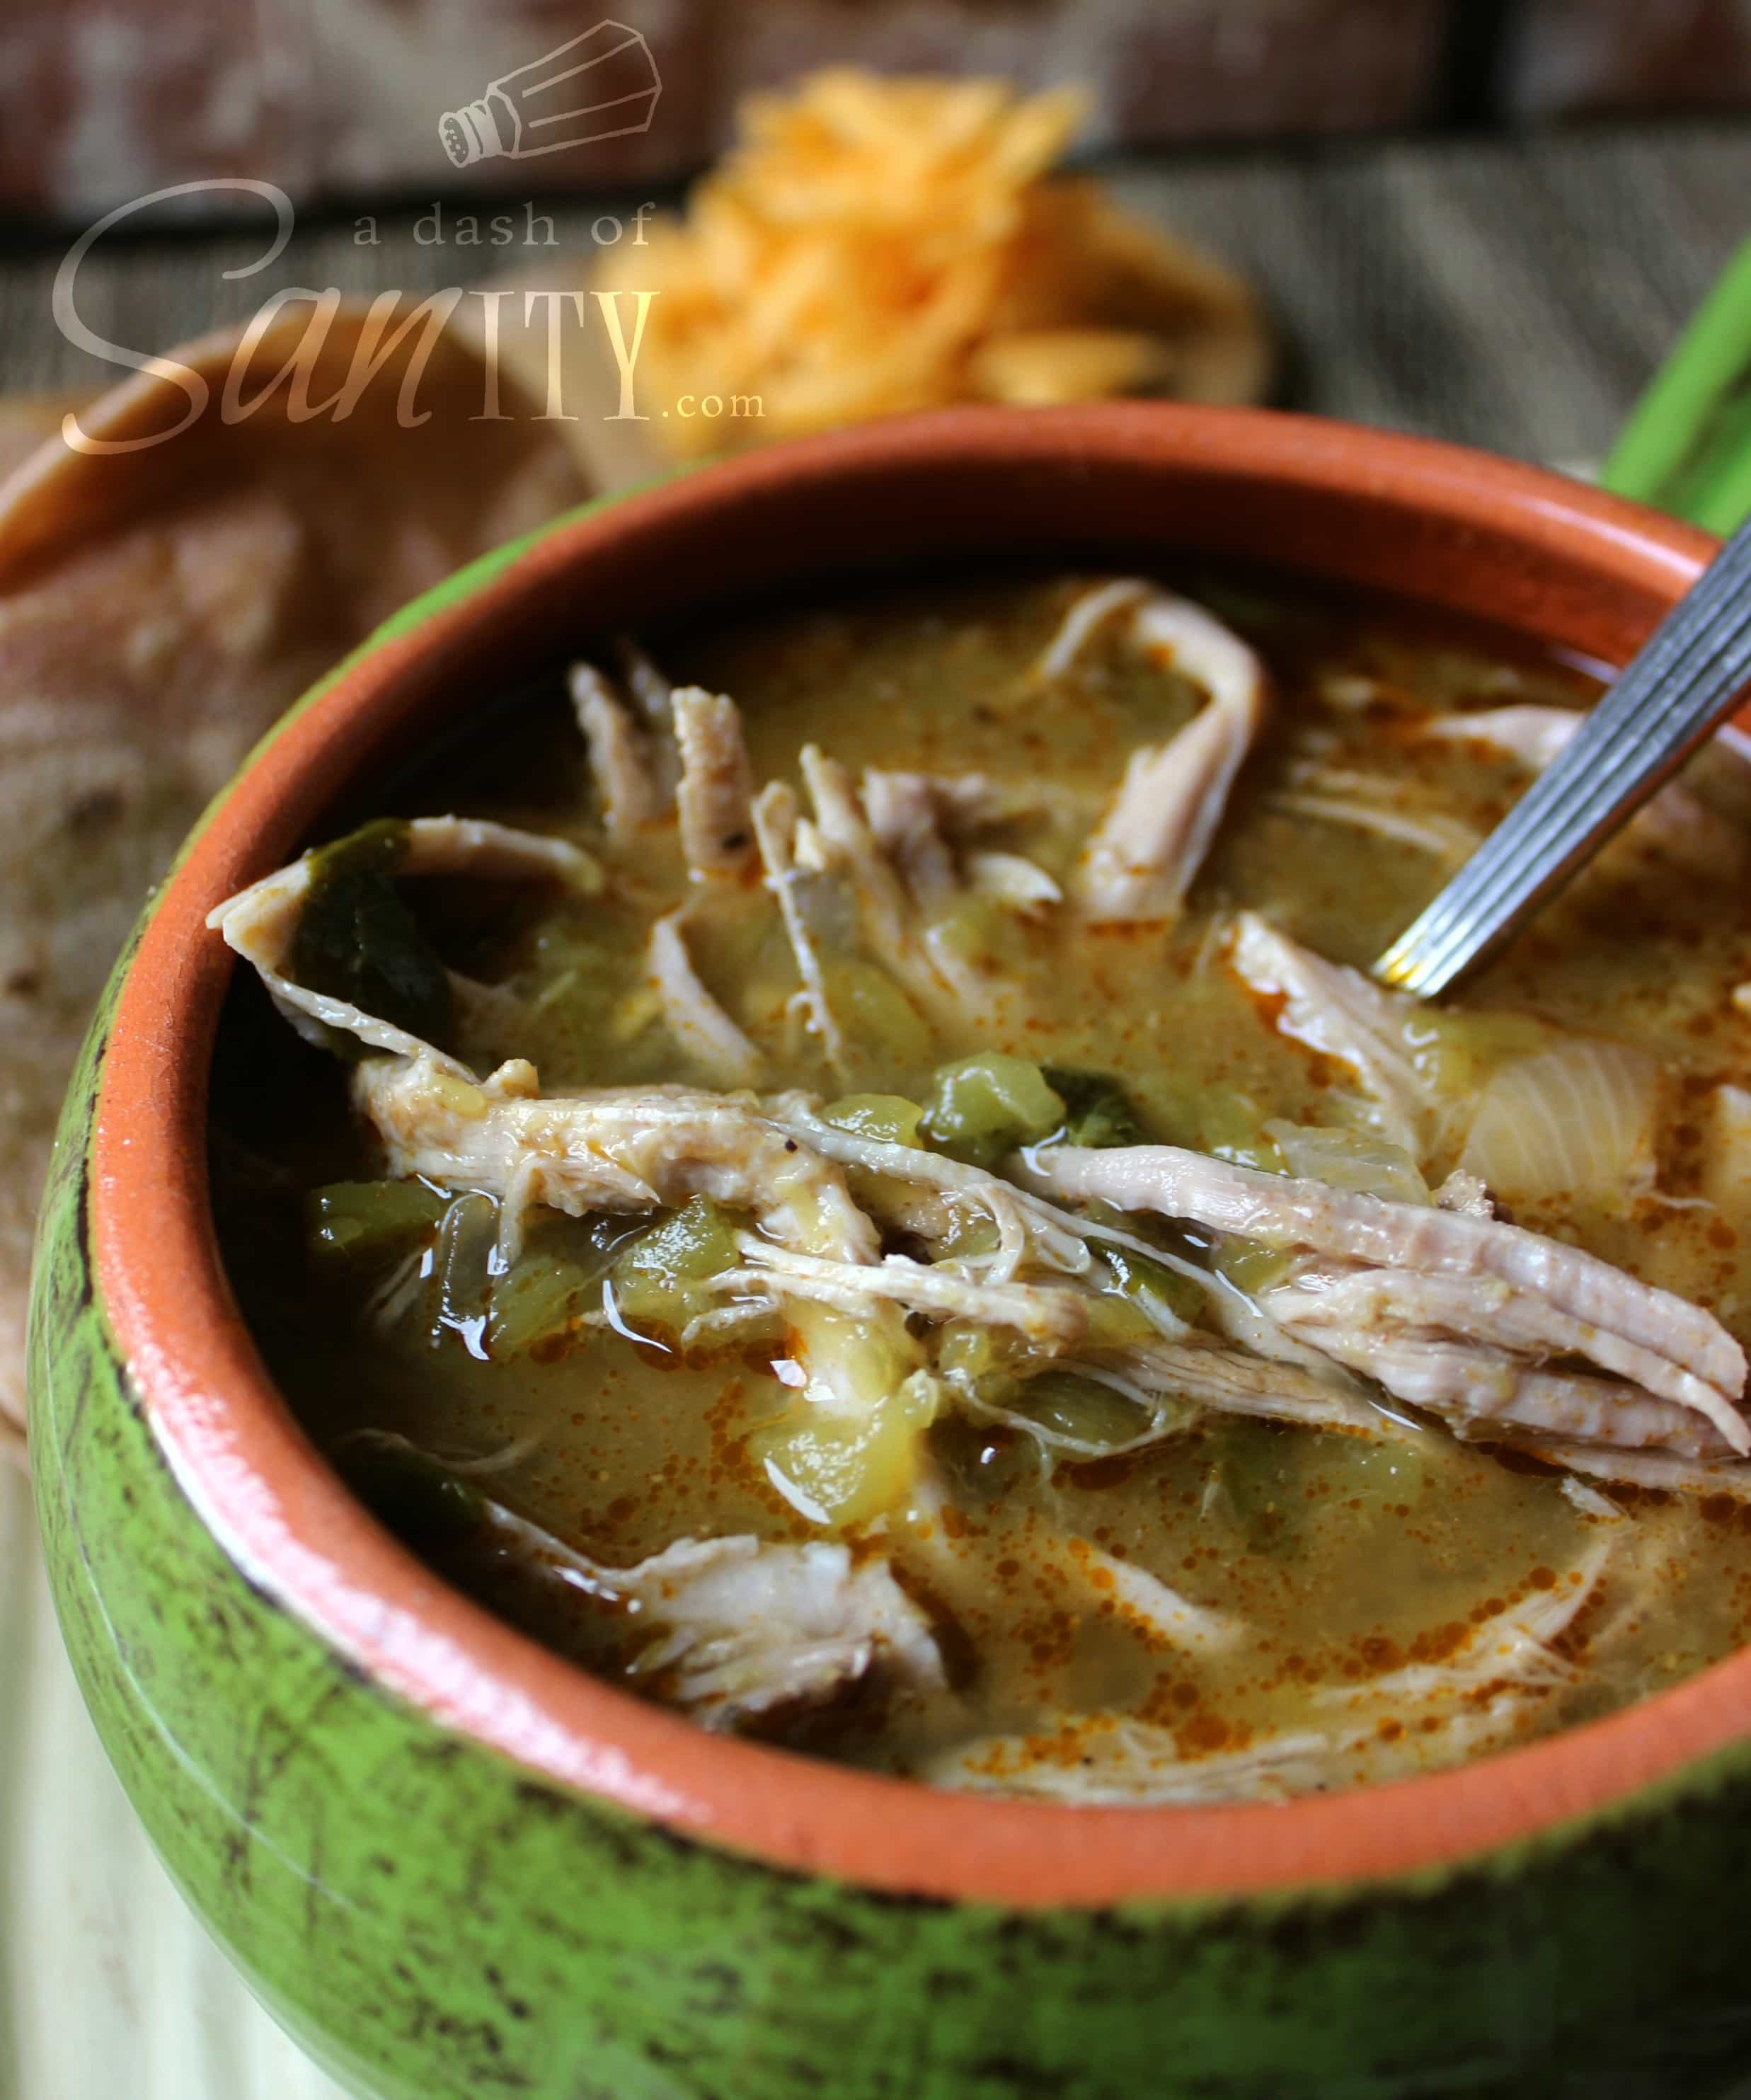 Slow Cooker Chile Verde served in a bowl with a spoon